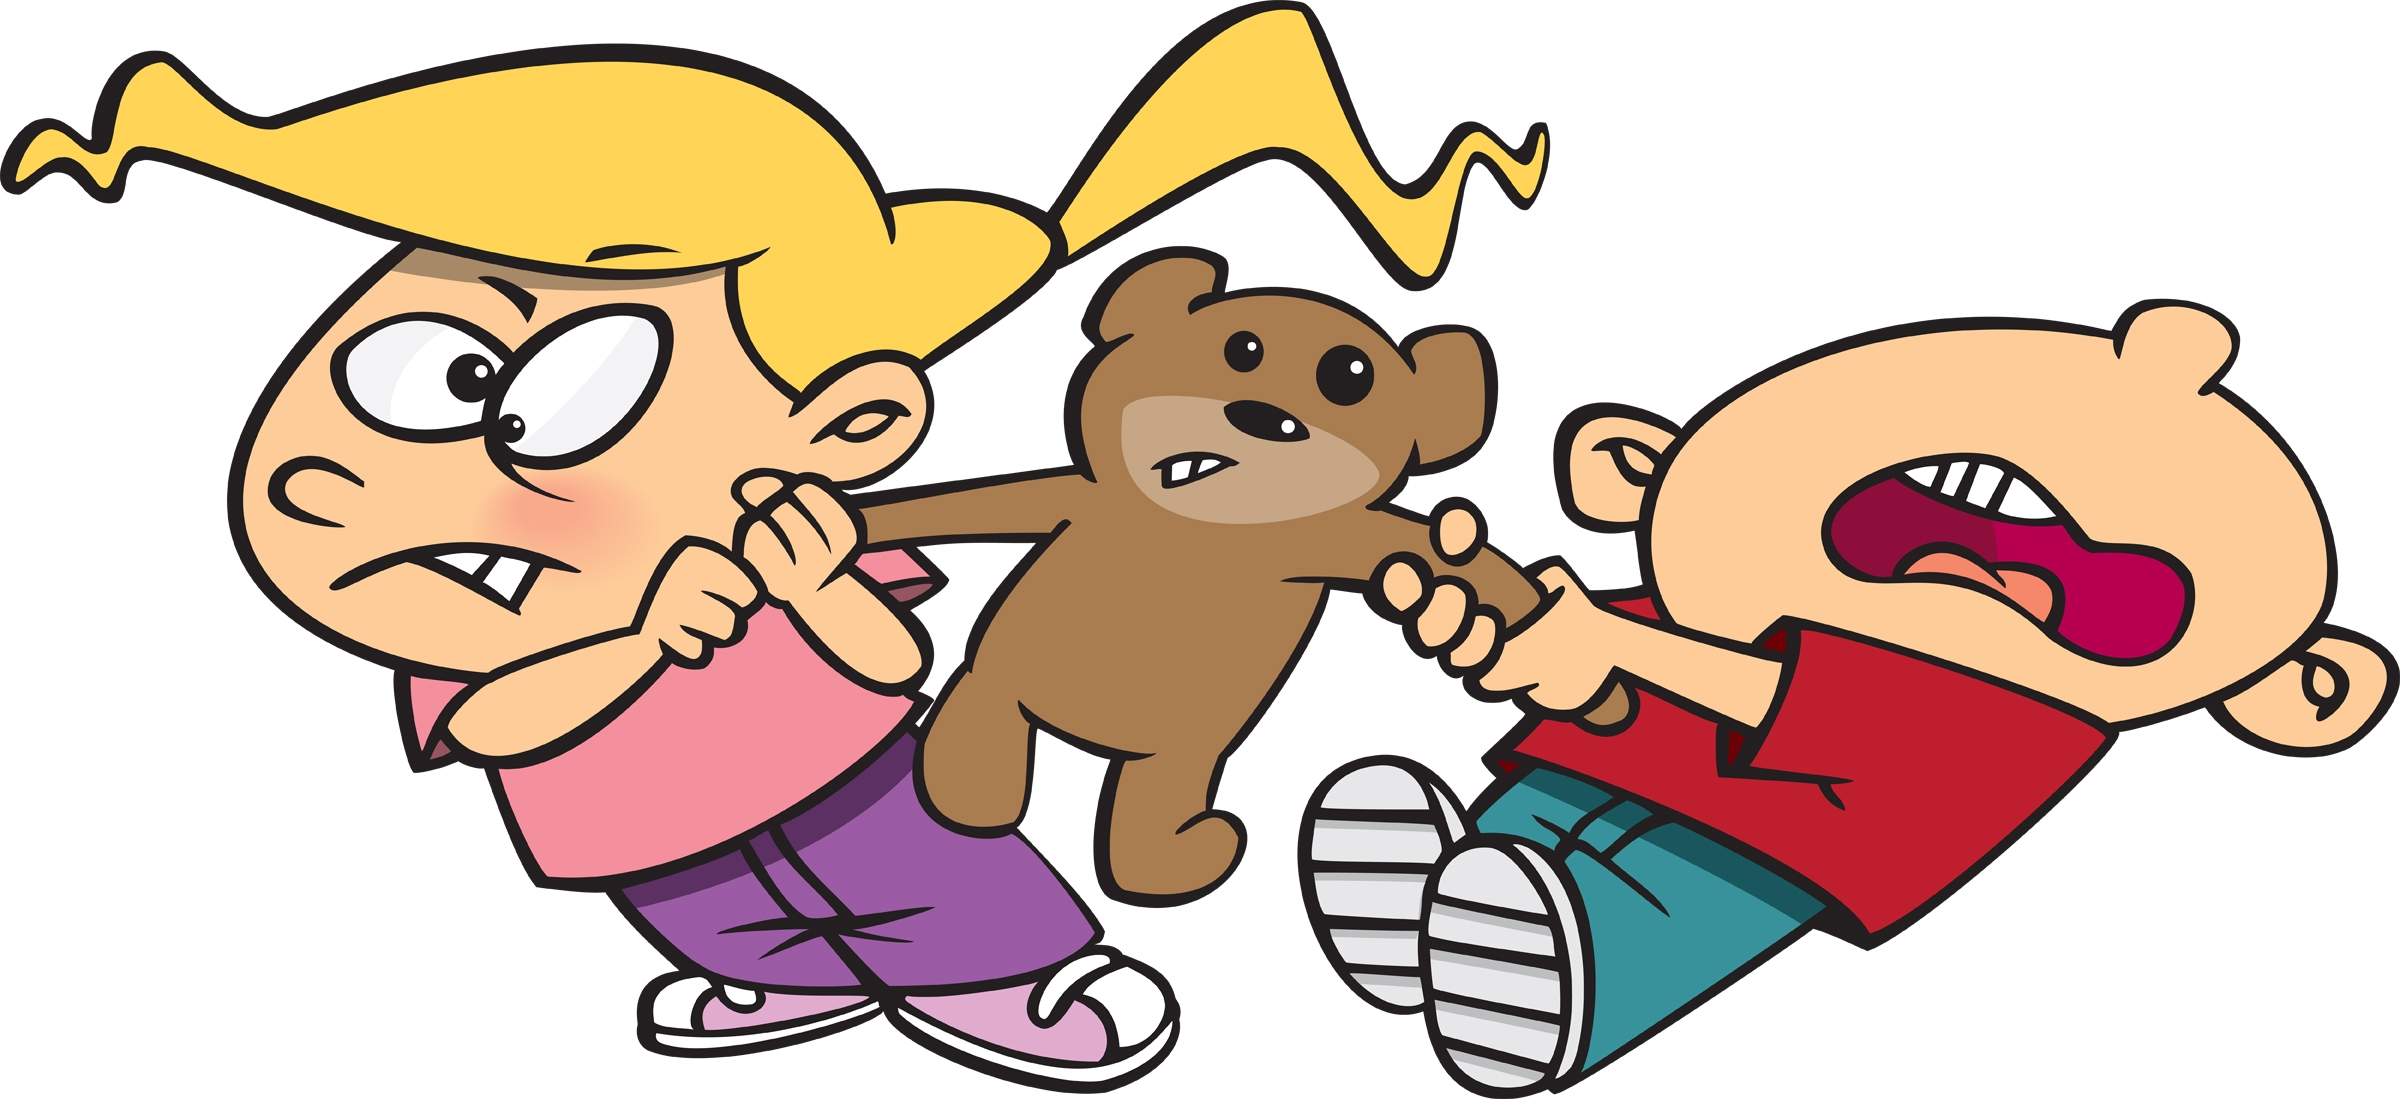 Free Cliparts Toddler Siblings, Download Free Clip Art, Free.